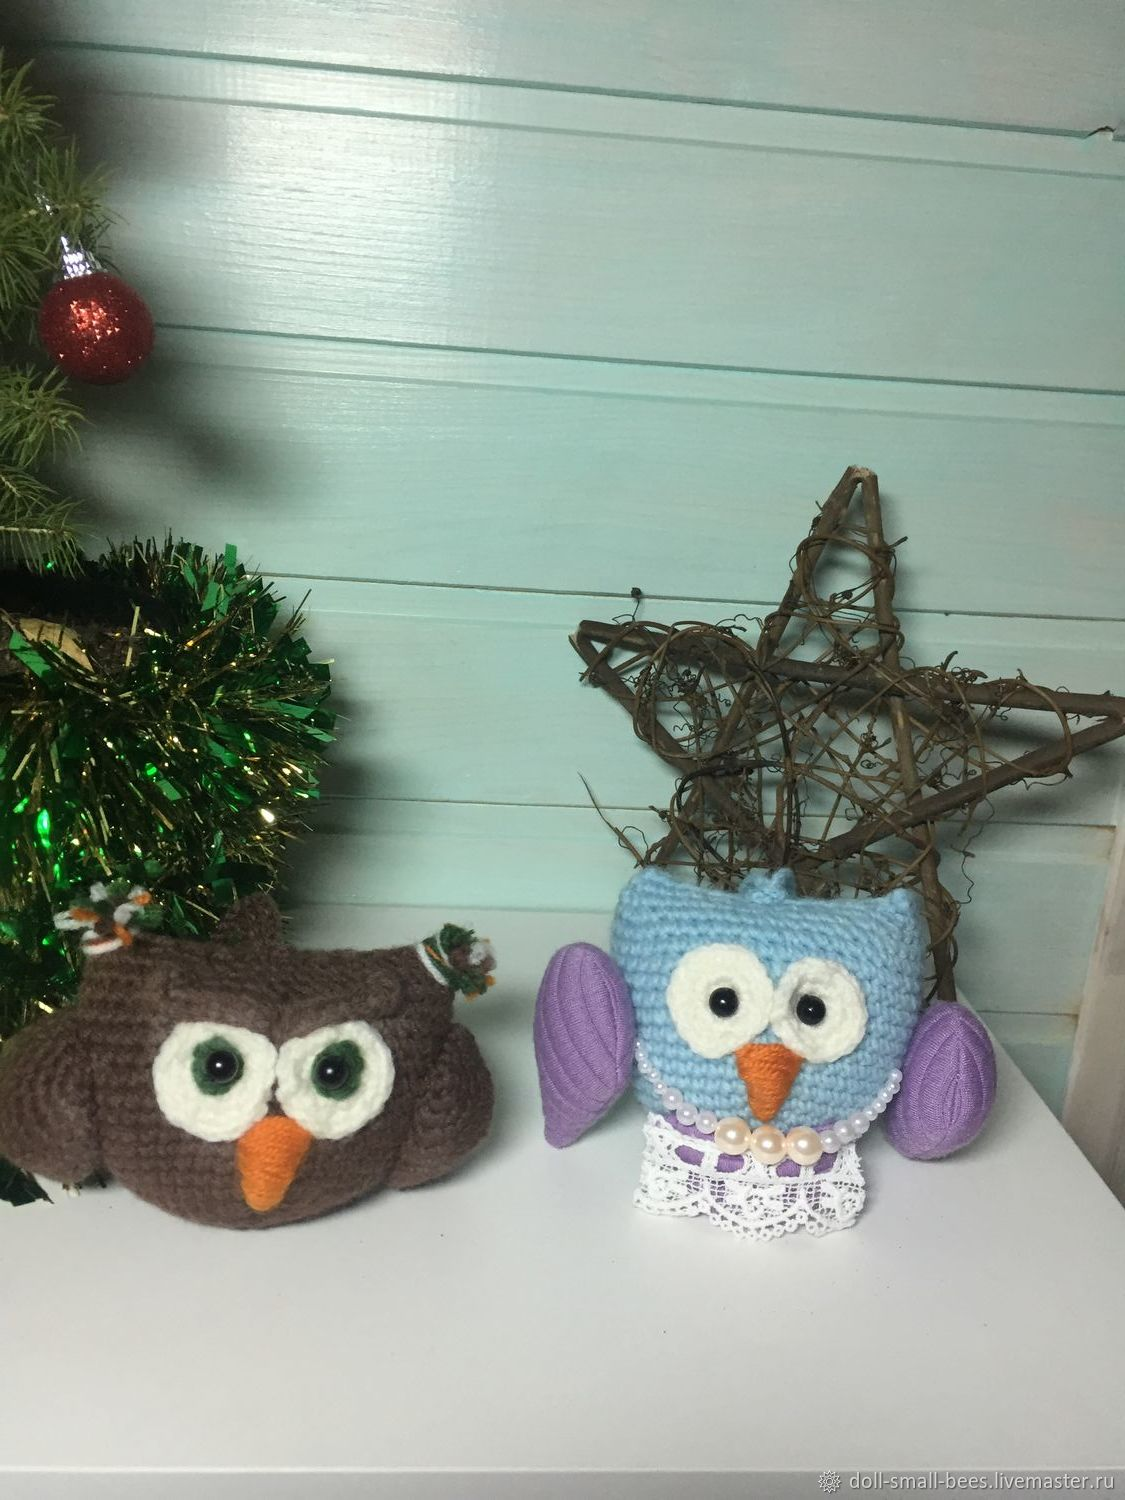 A Set Of Knitted Christmas Ornaments